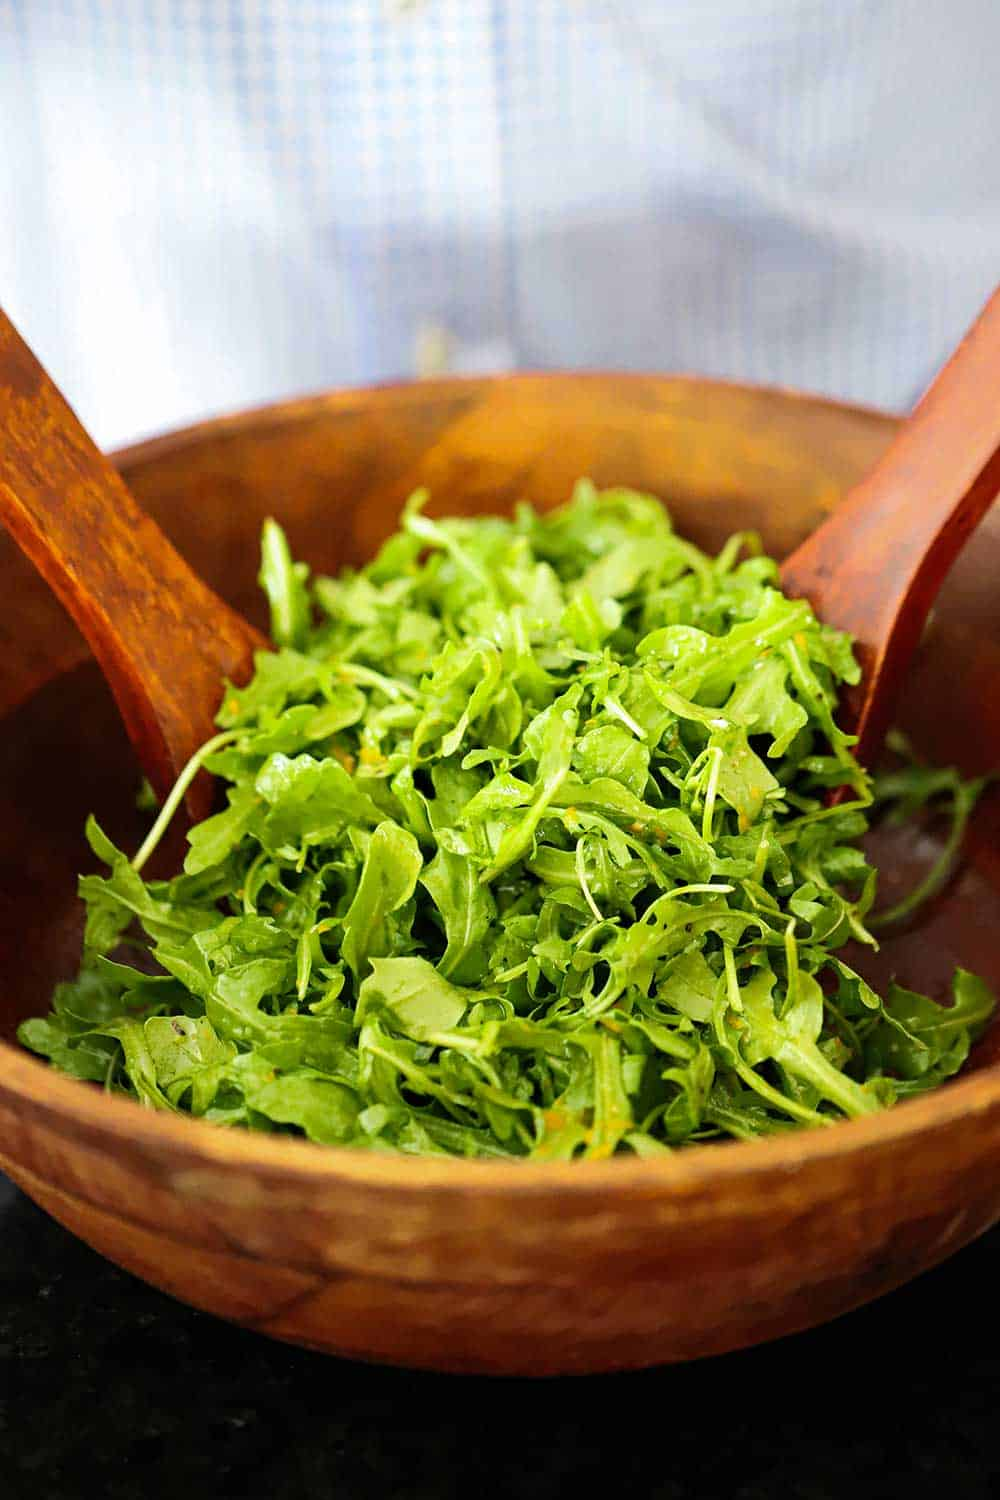 A large wooden salad bowl filled with baby arugula being tossed by a couple of wooden spoons.